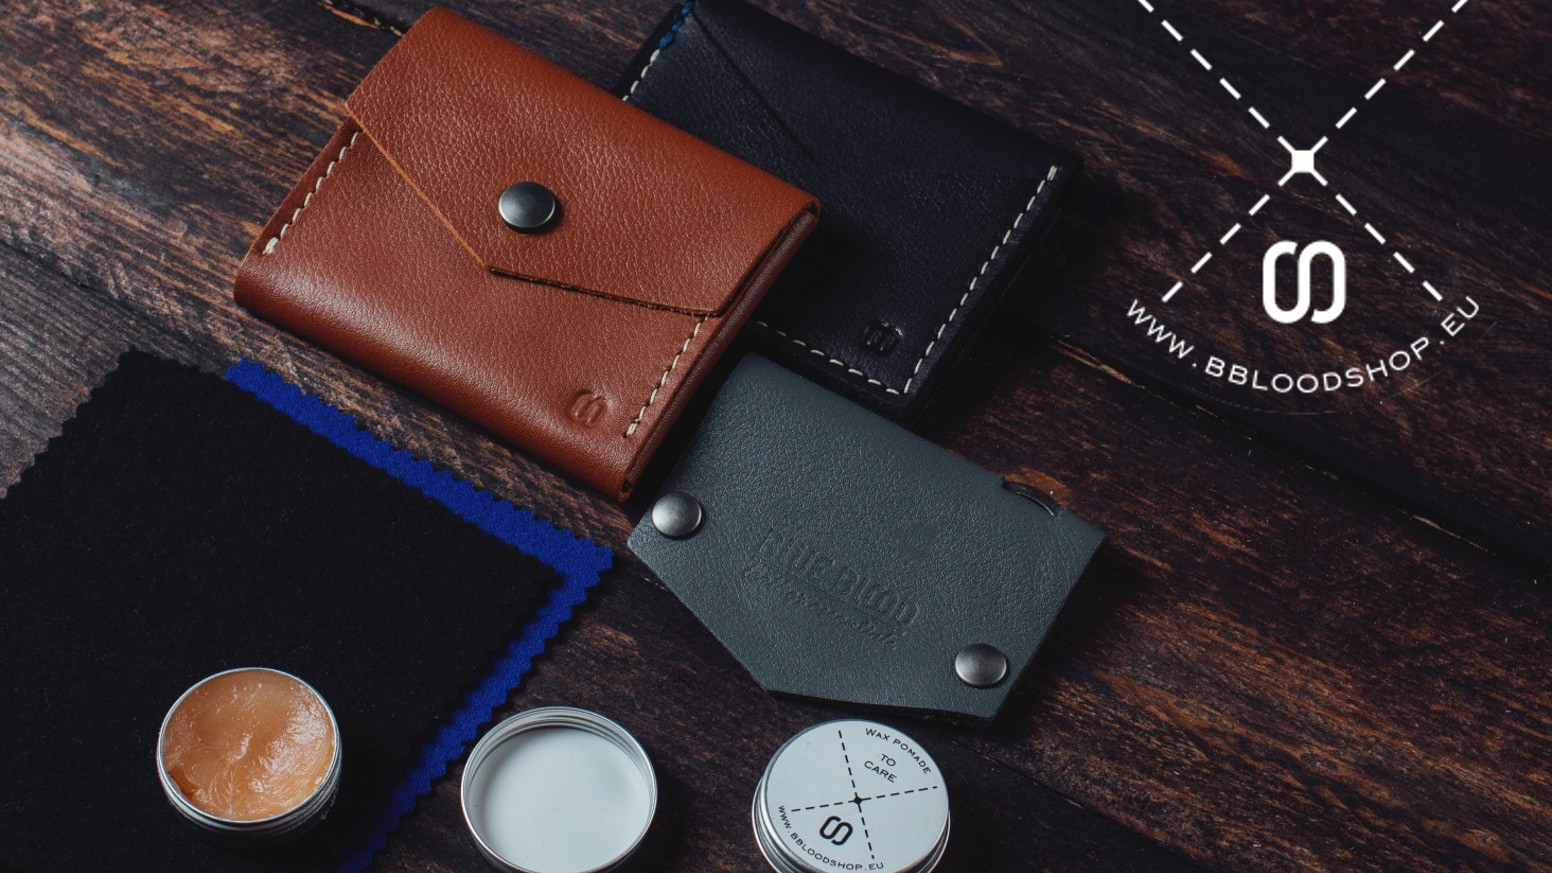 Everyday leather essentials for all your needs - made by hand in Europe